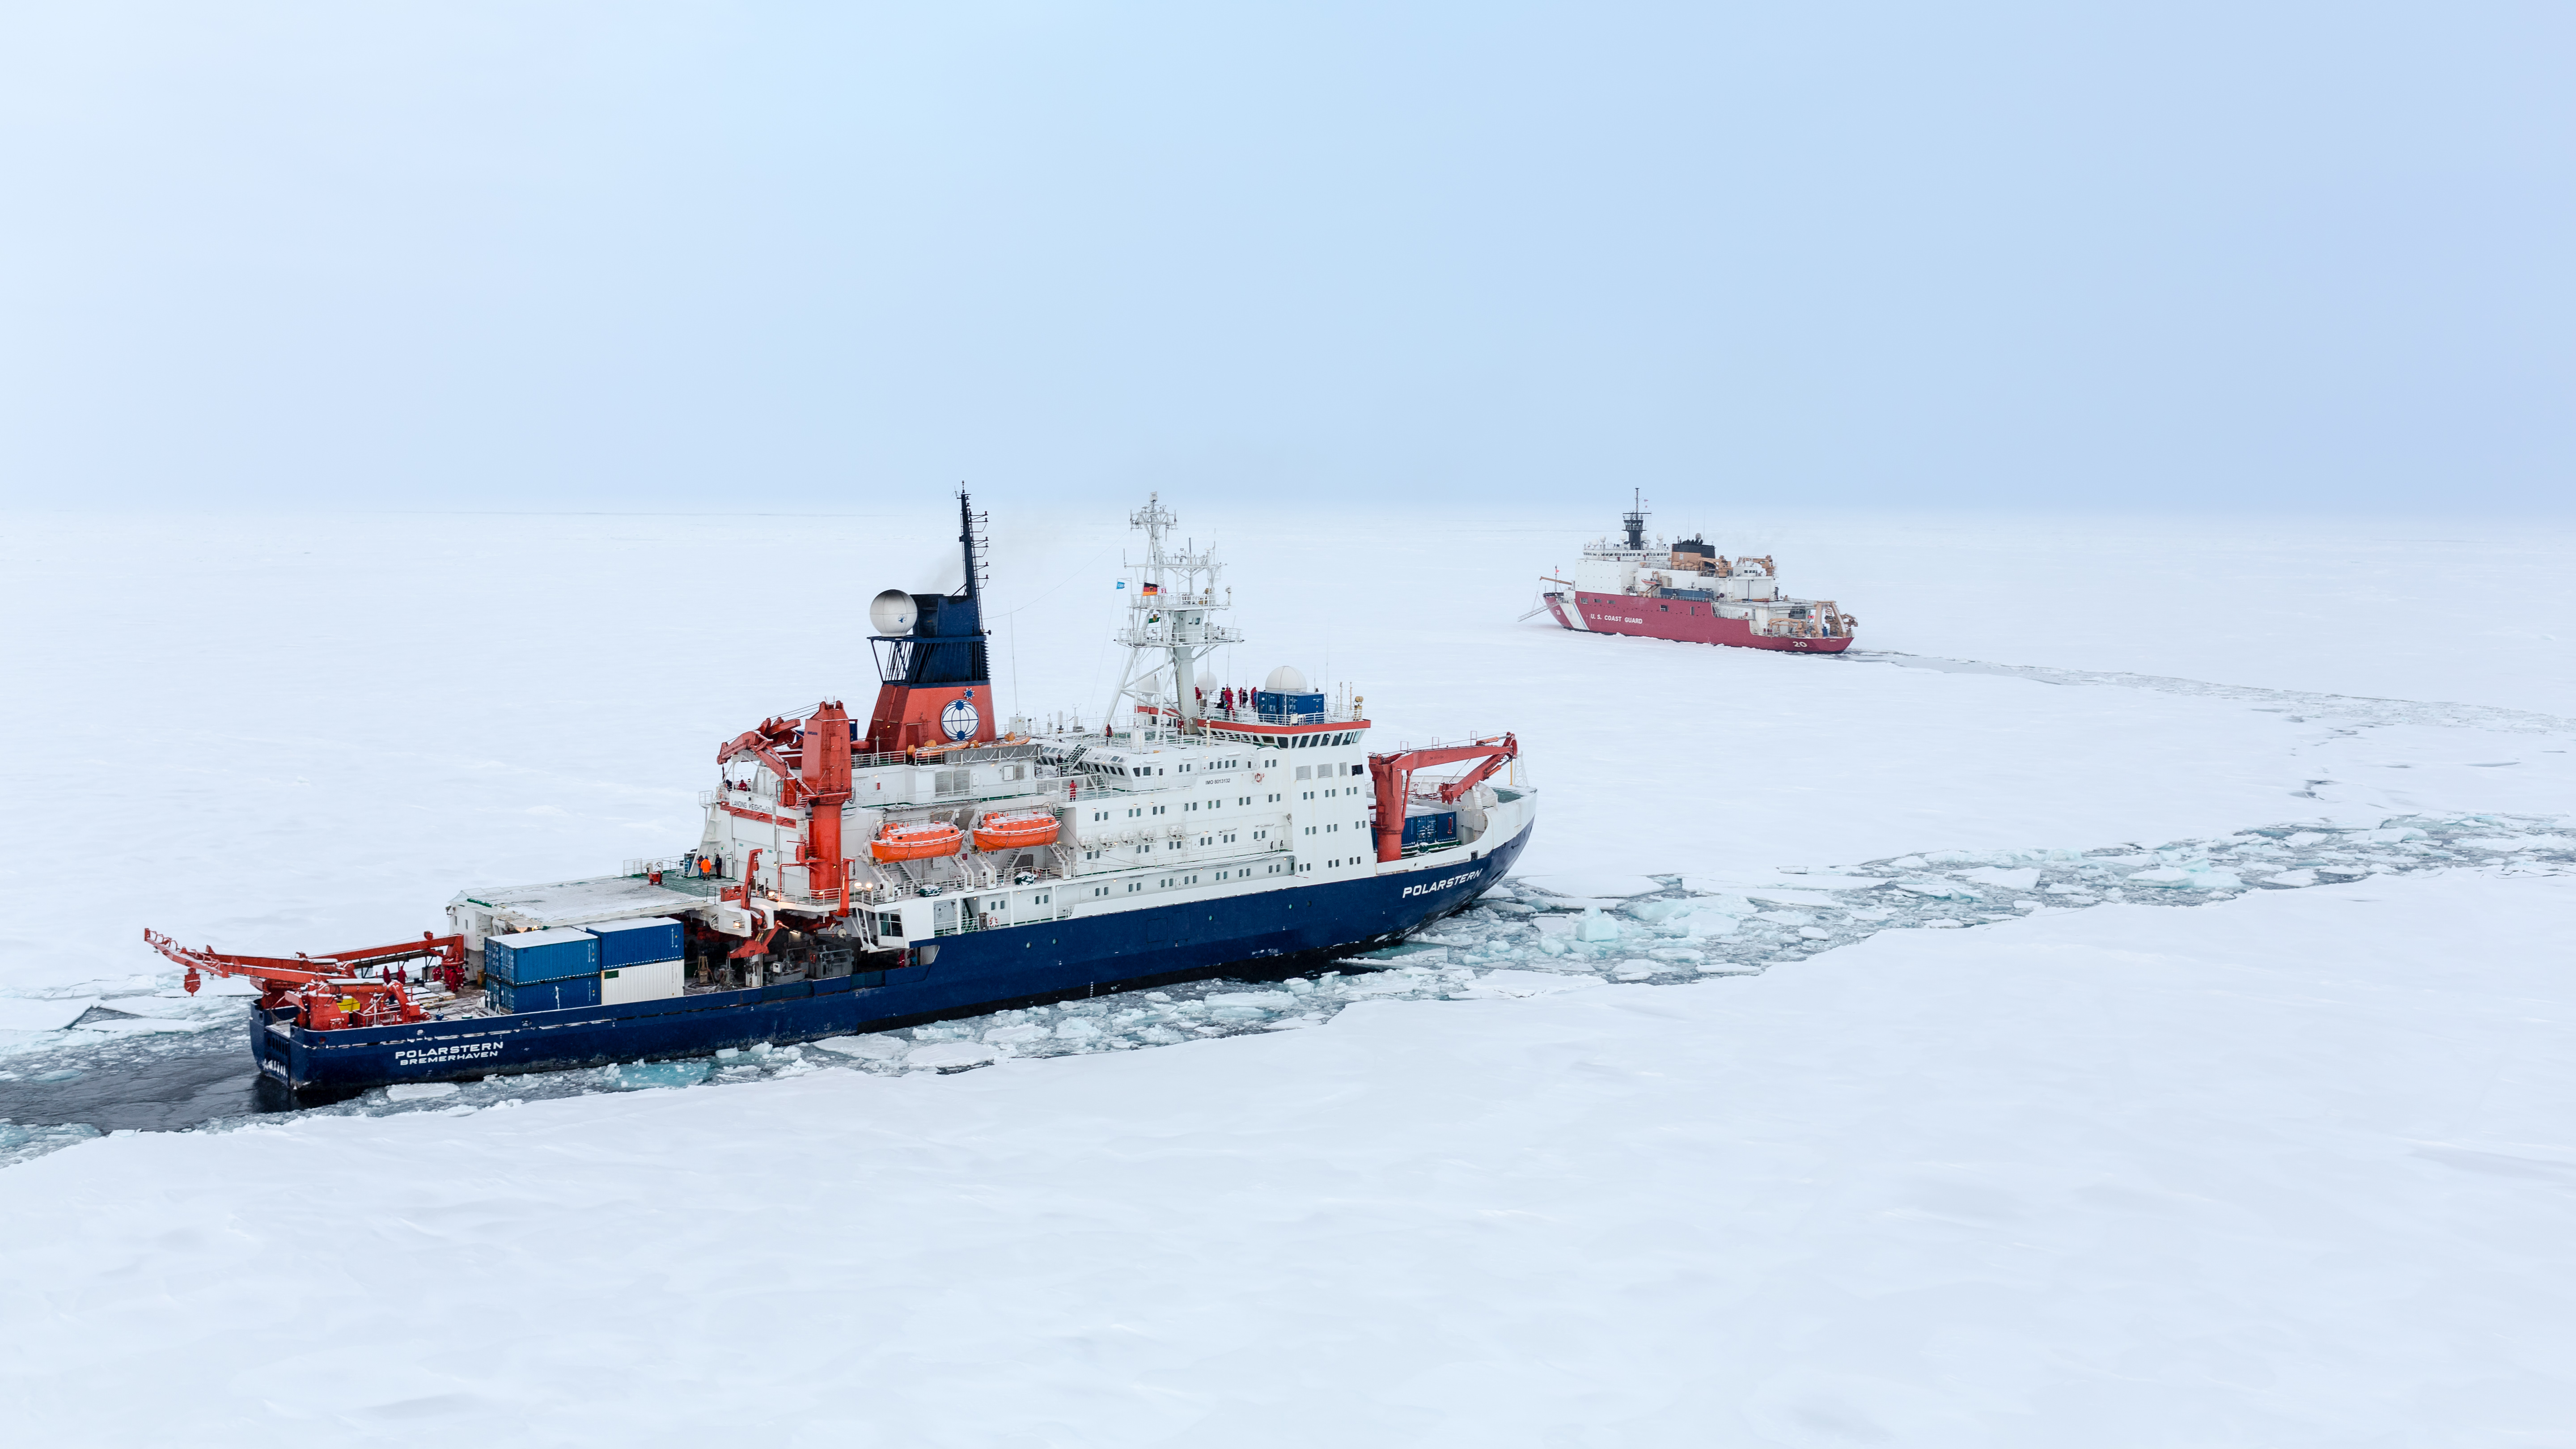 Historic crossover meeting of USCGC Healy and RV Polarstern at the North Pole, 7 September 2015. Photo: Stefan Hendricks, AWI